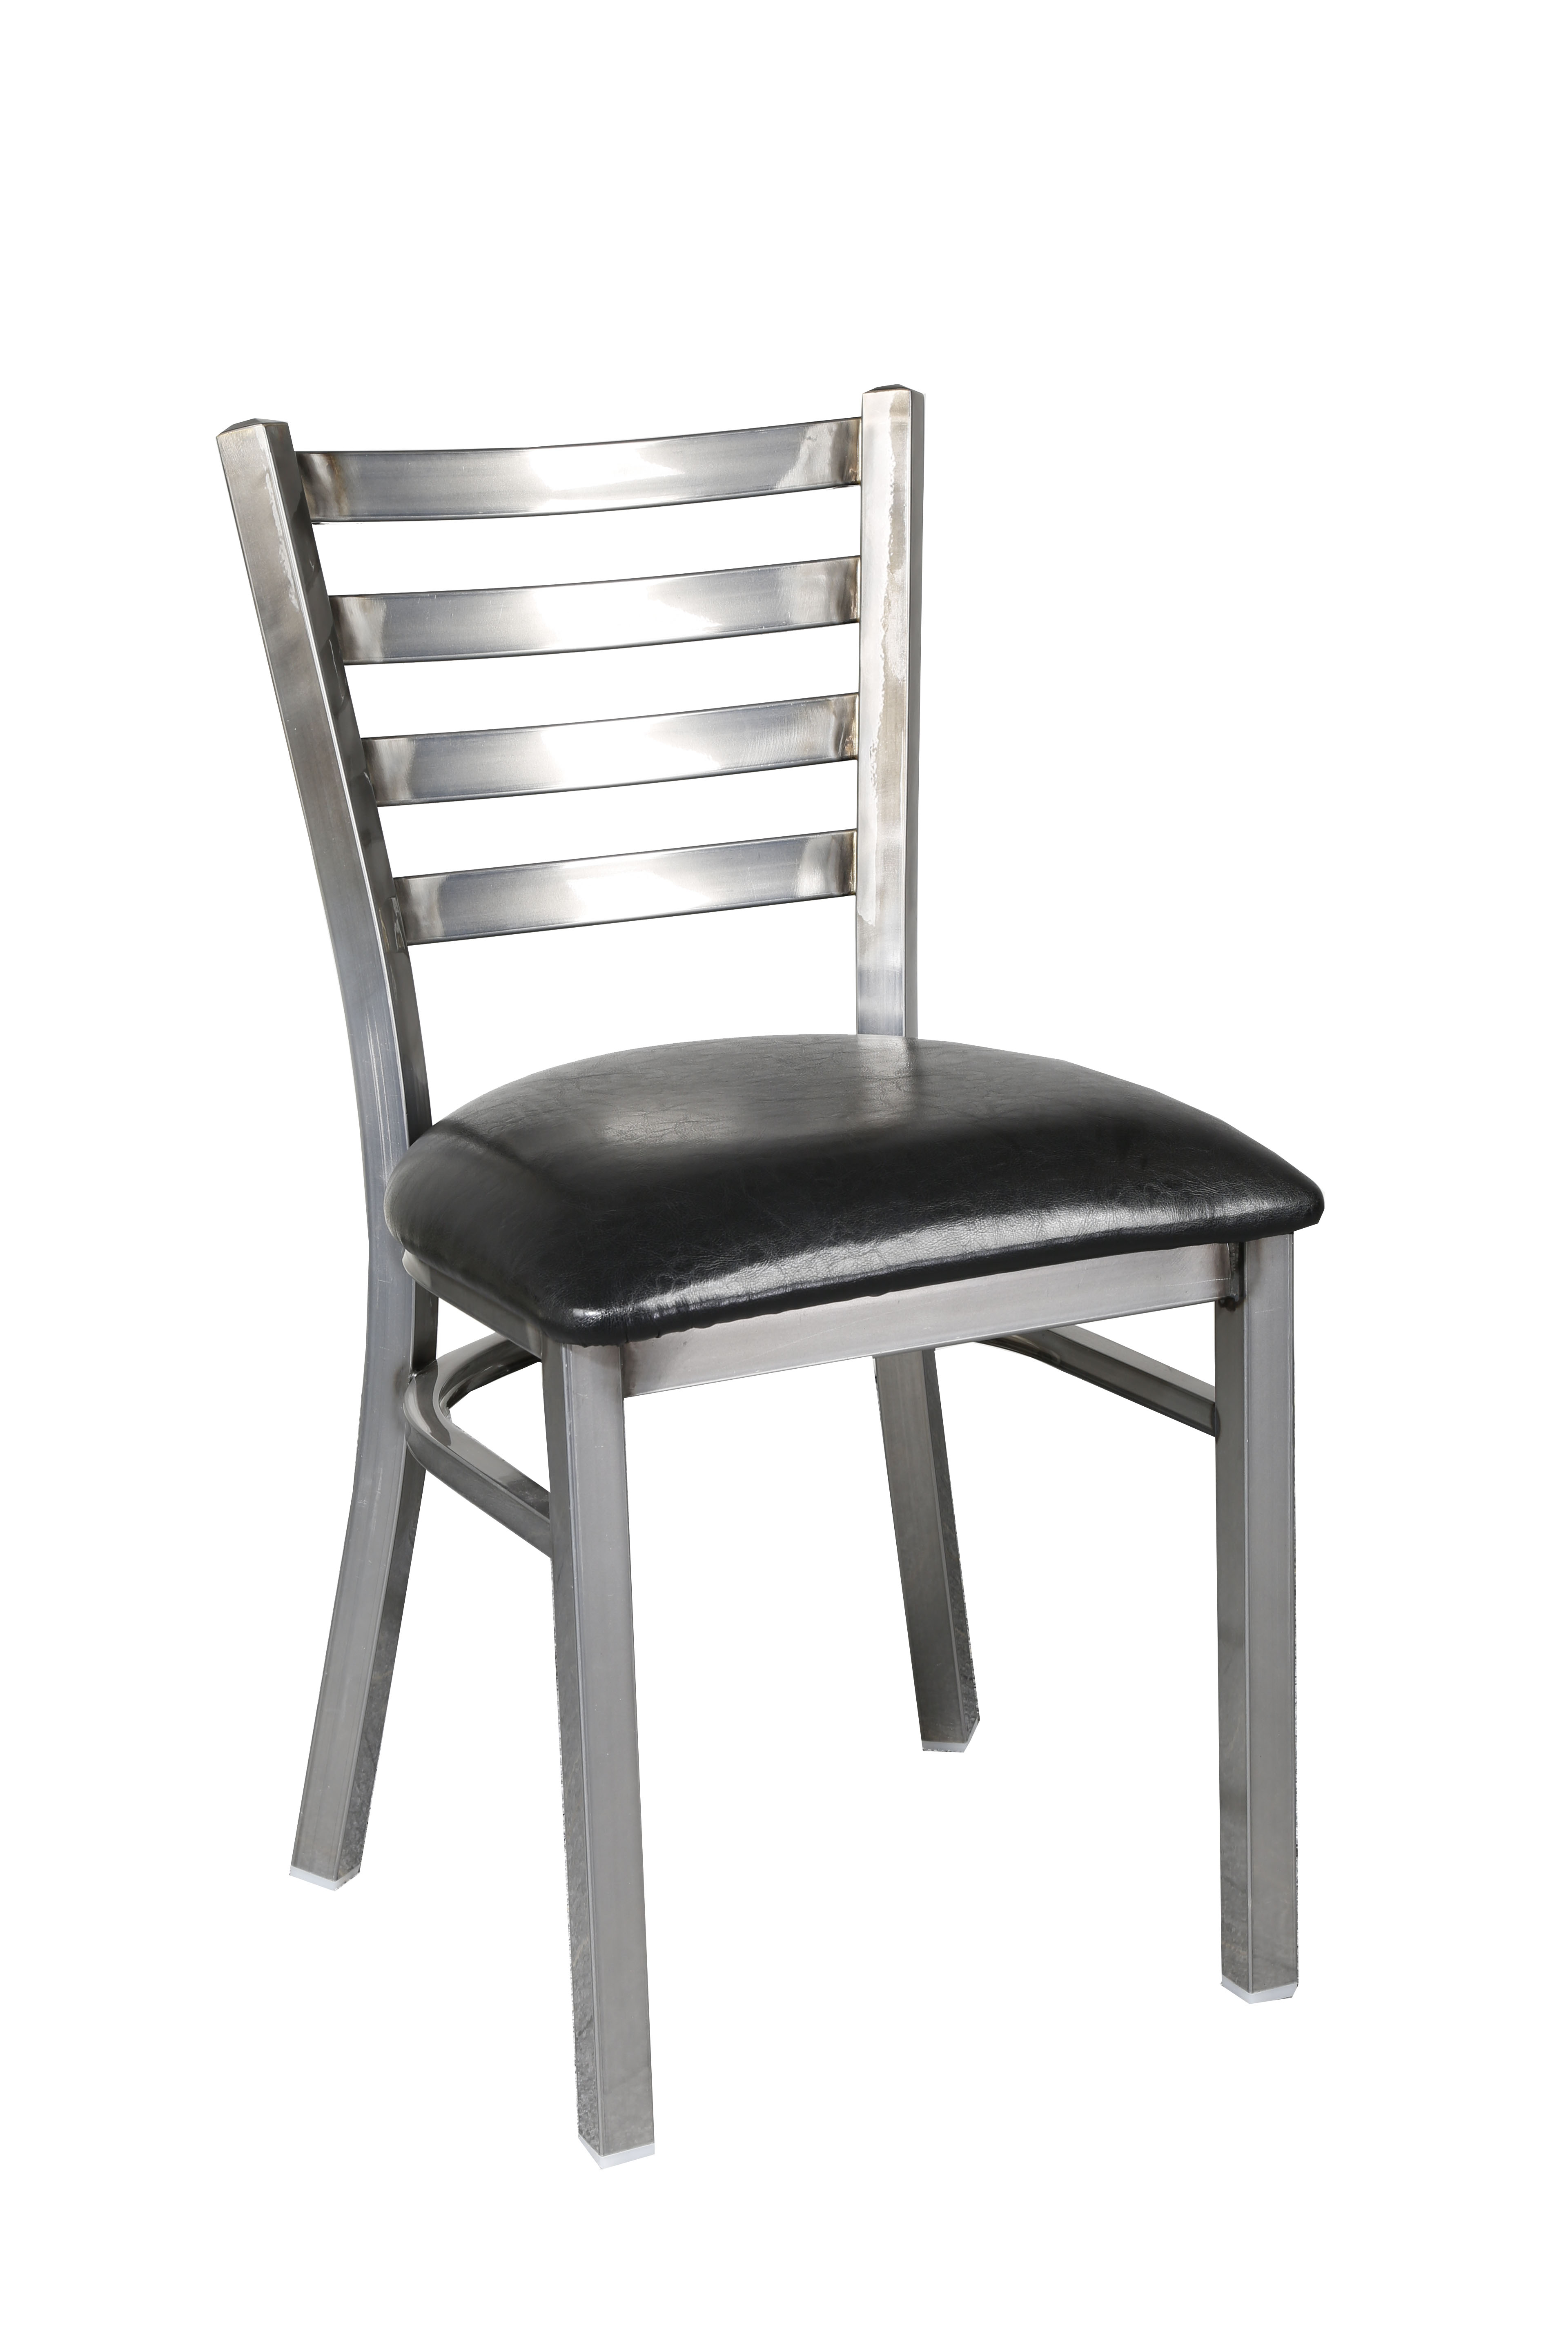 AAA Furniture Wholesale 316/CLEAR COAT BVS chair, side, indoor